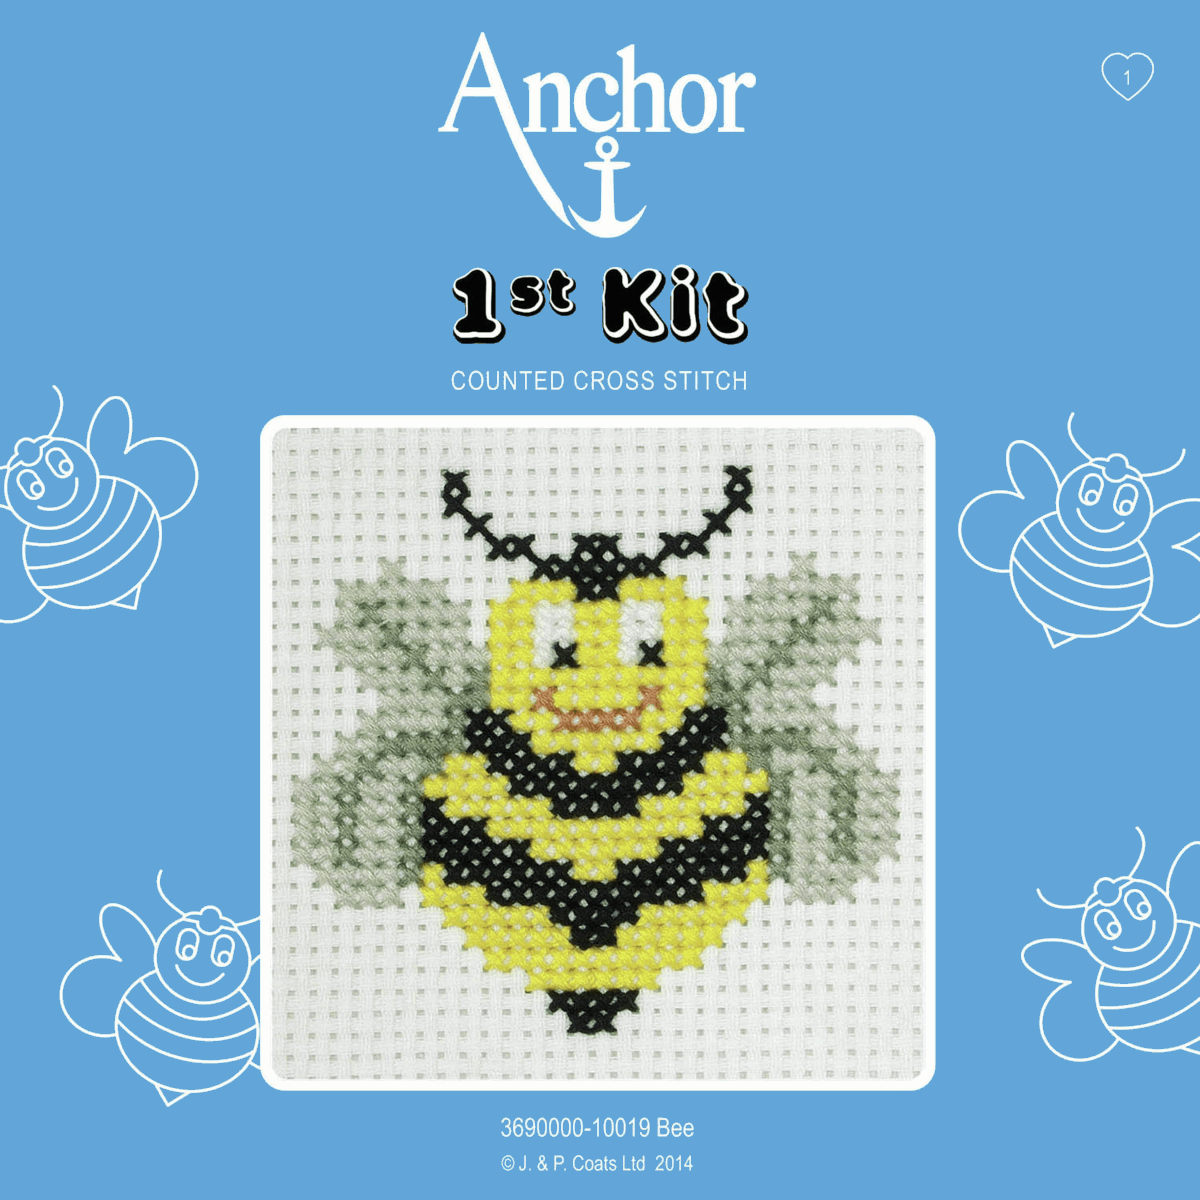 1st Cross Stitch Kit by Anchor - Bee